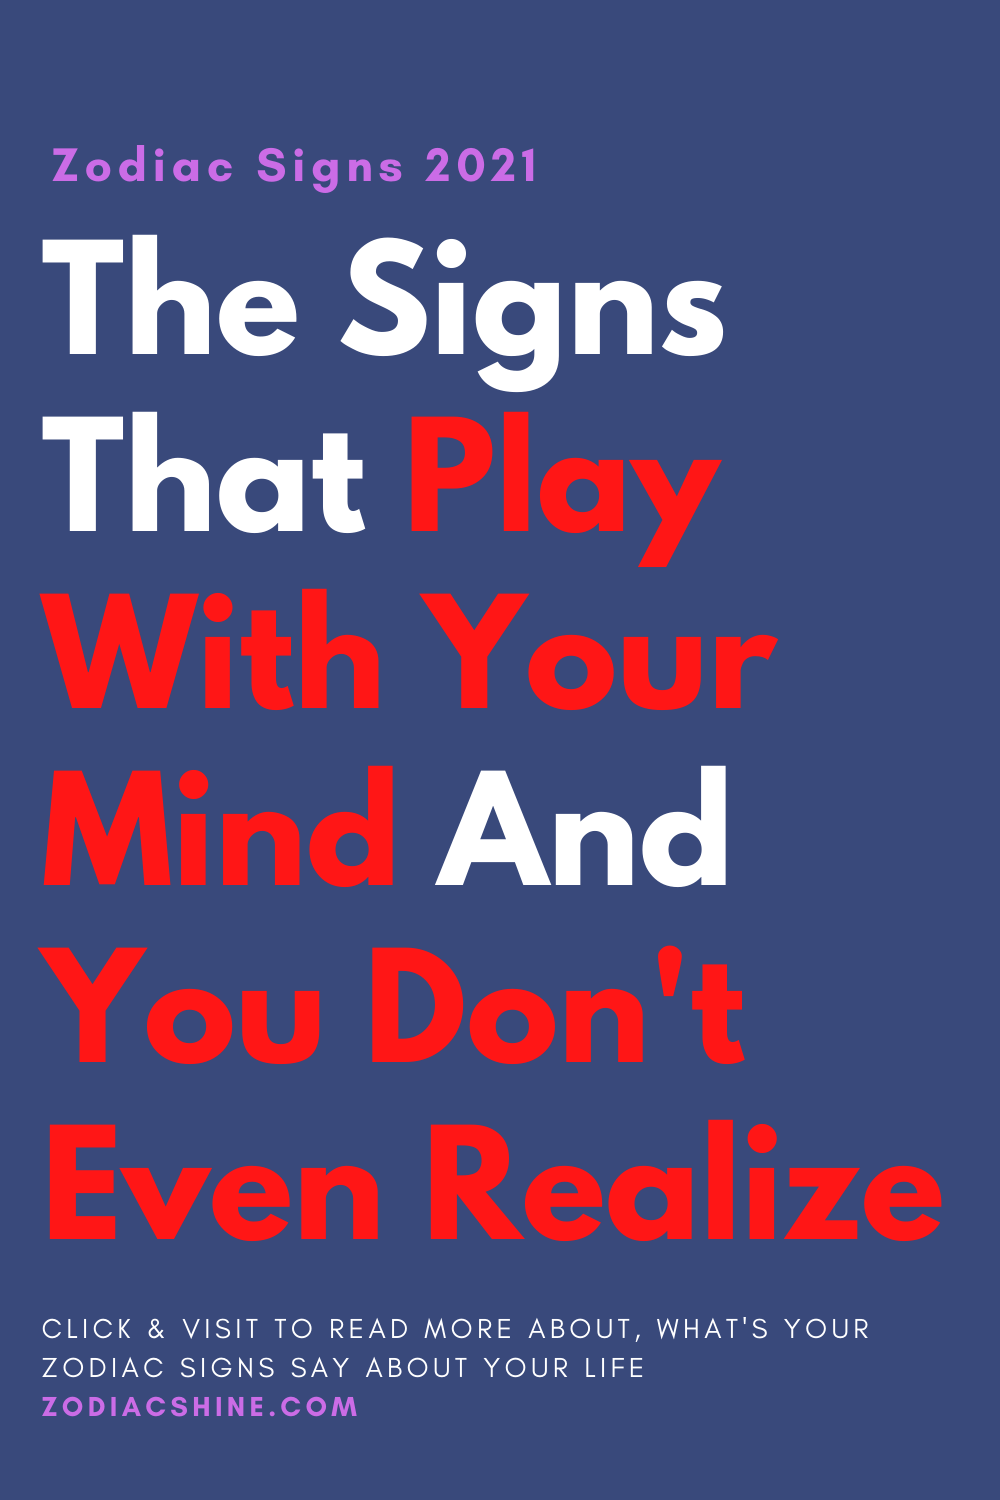 The Signs That Play With Your Mind And You Don't Even Realize